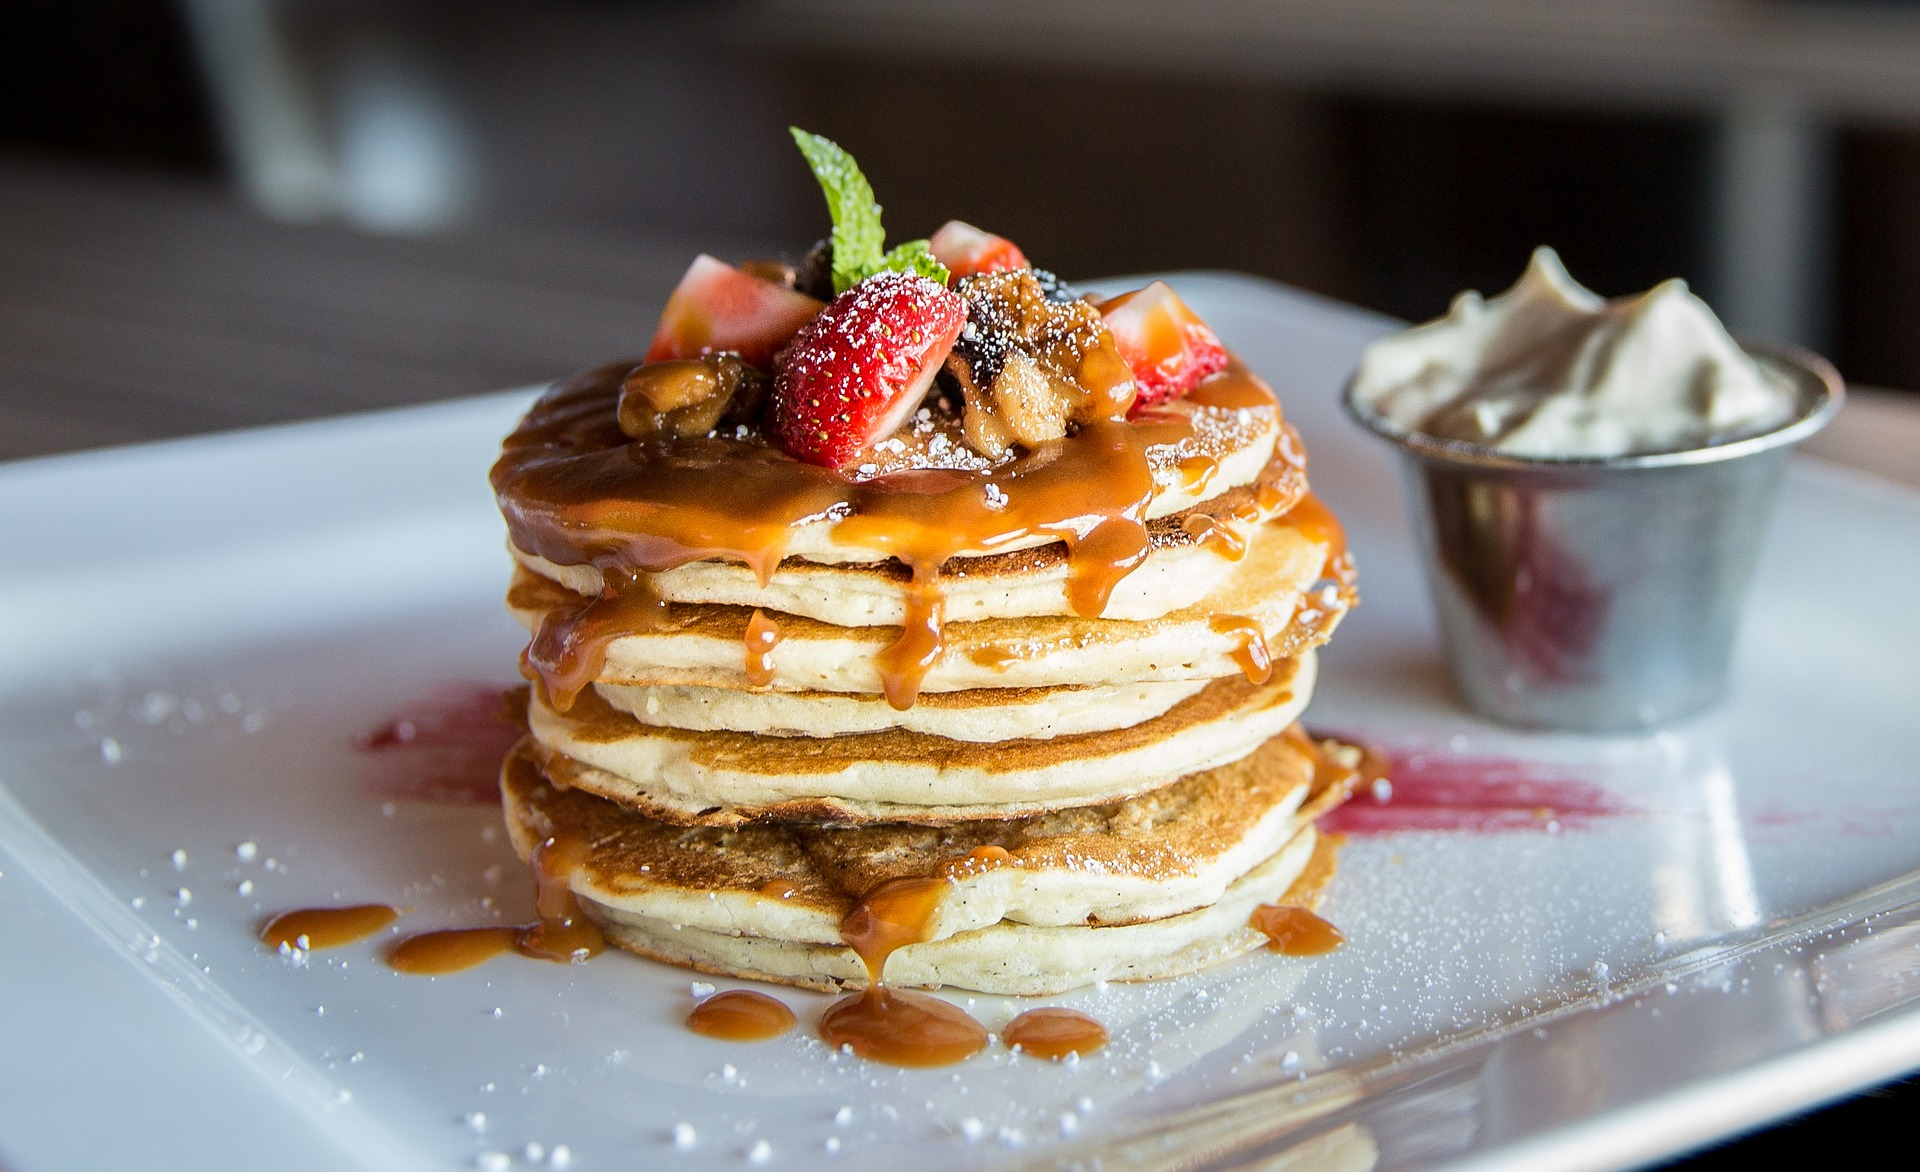 Top 10 Creative and Delicious Recipes for Sweet Pancakes You've Never Seen Before